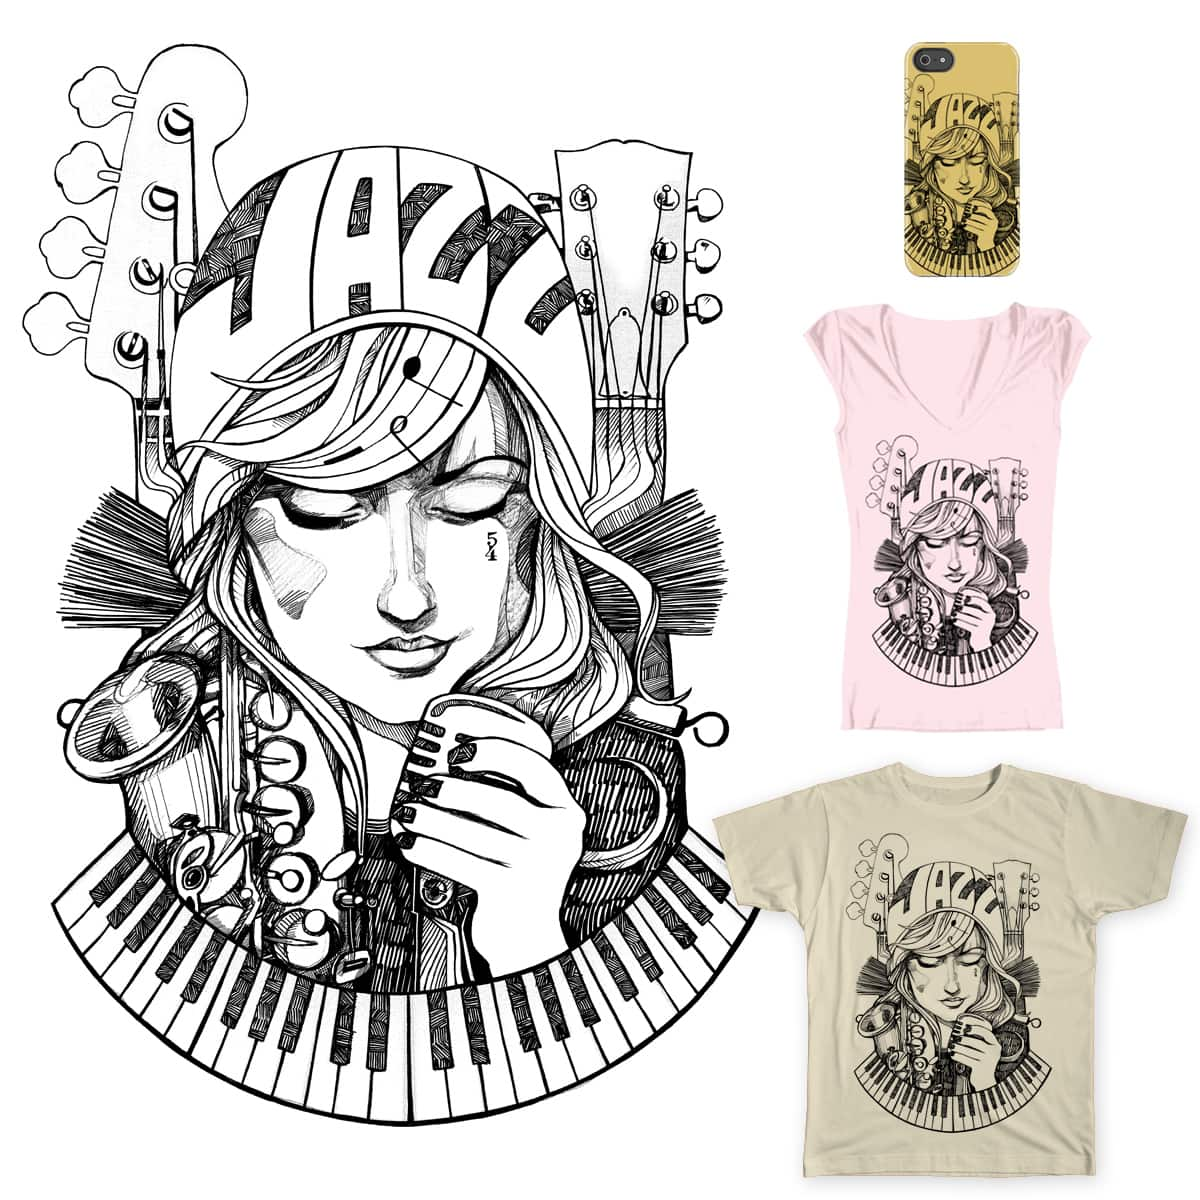 Take Jazz by filds on Threadless